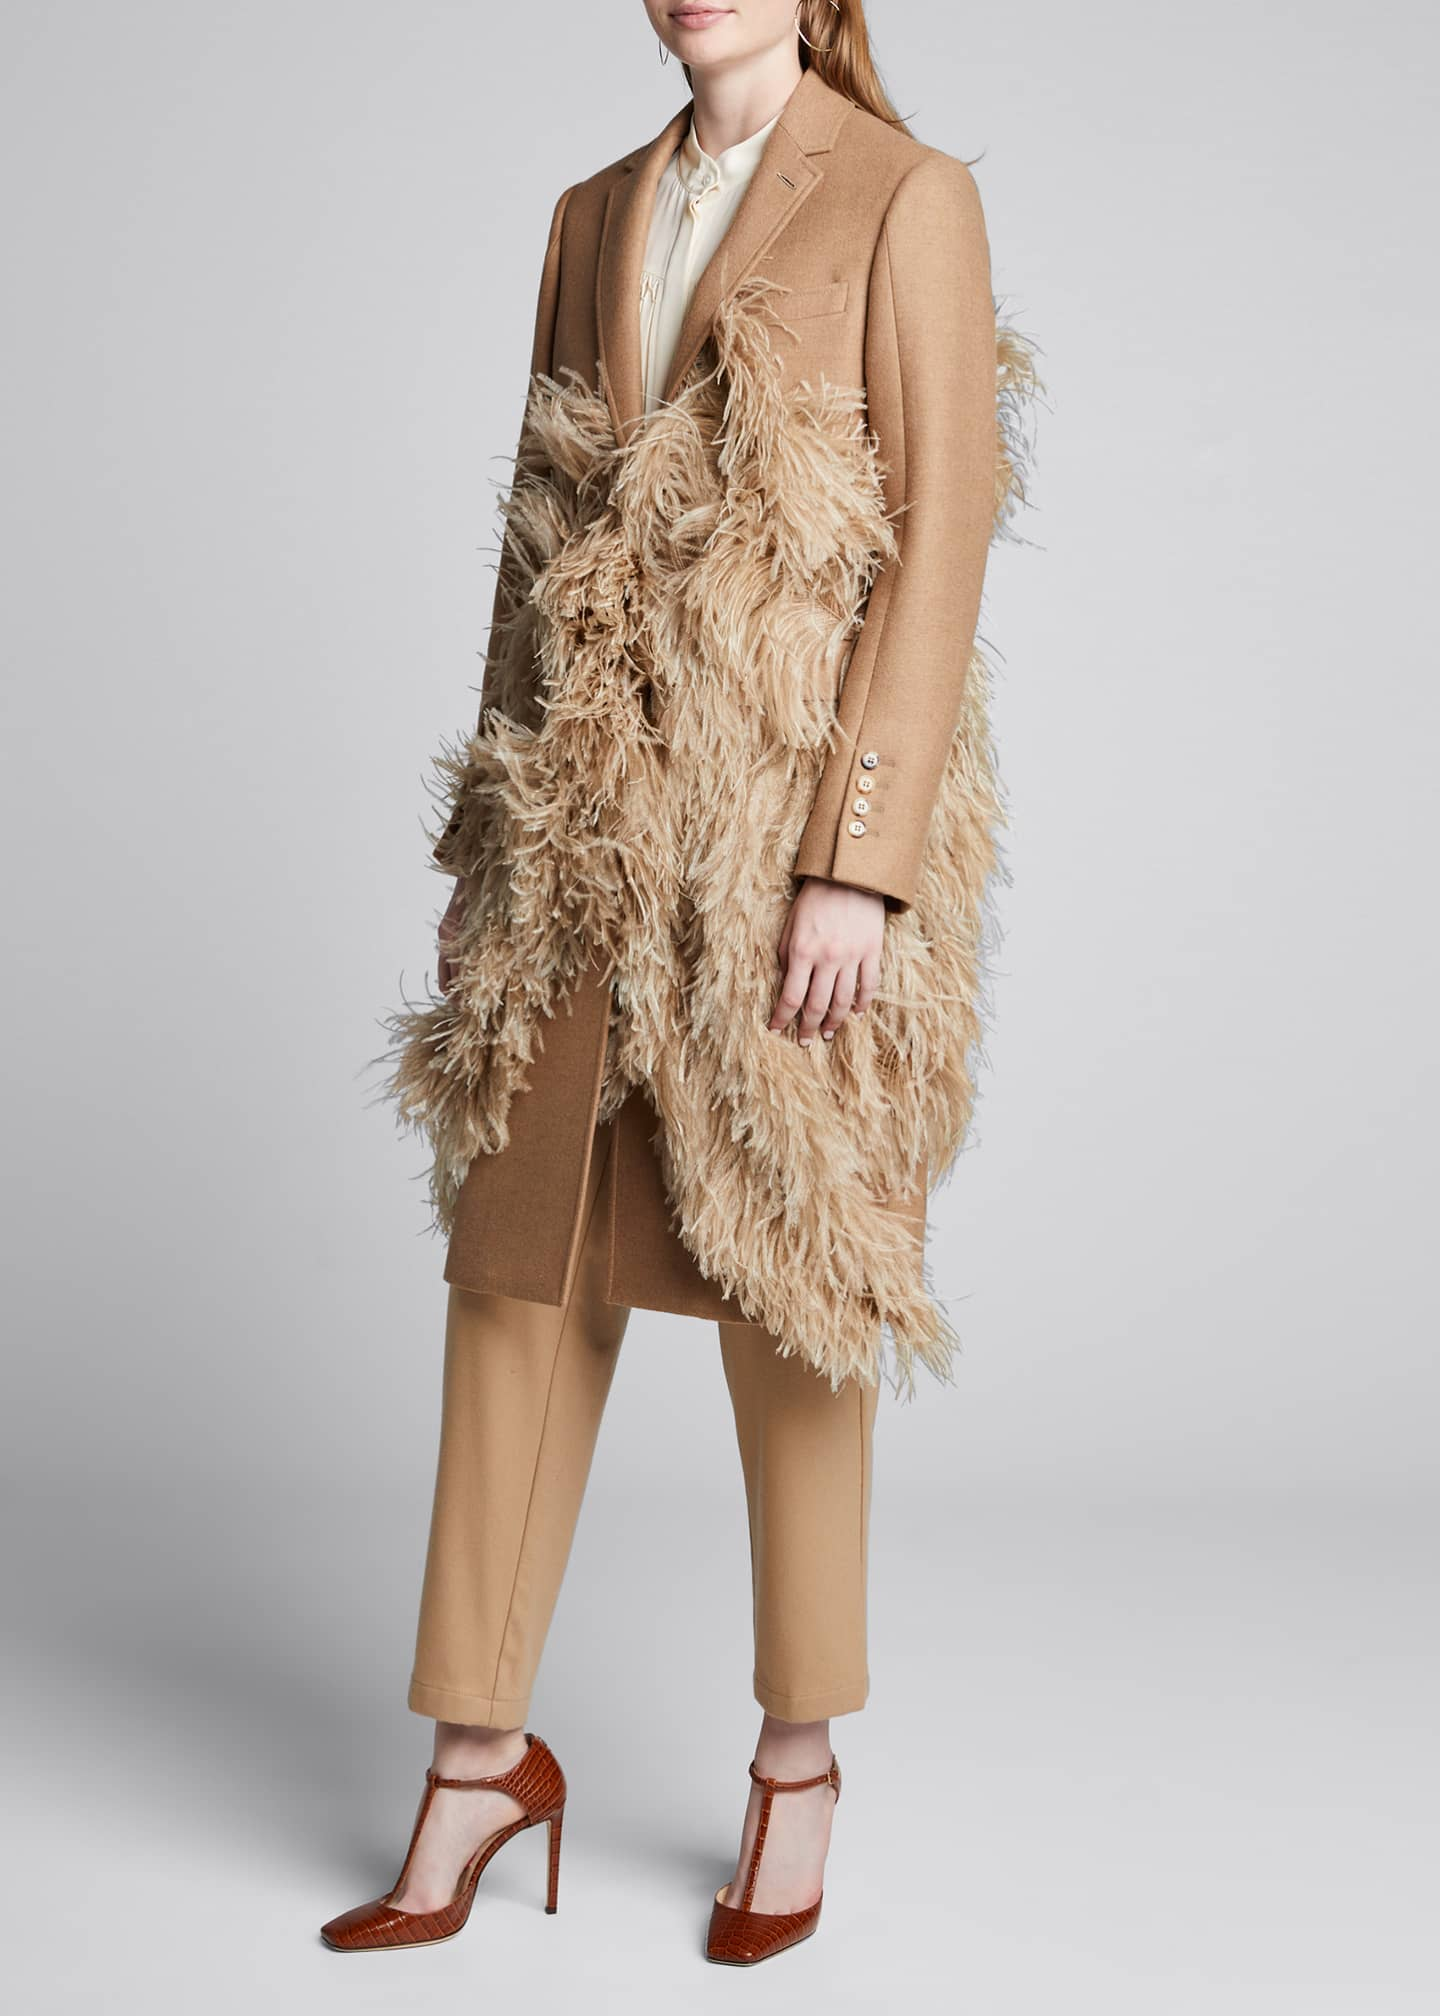 Burberry Feather-Trim Camel Hair Coat